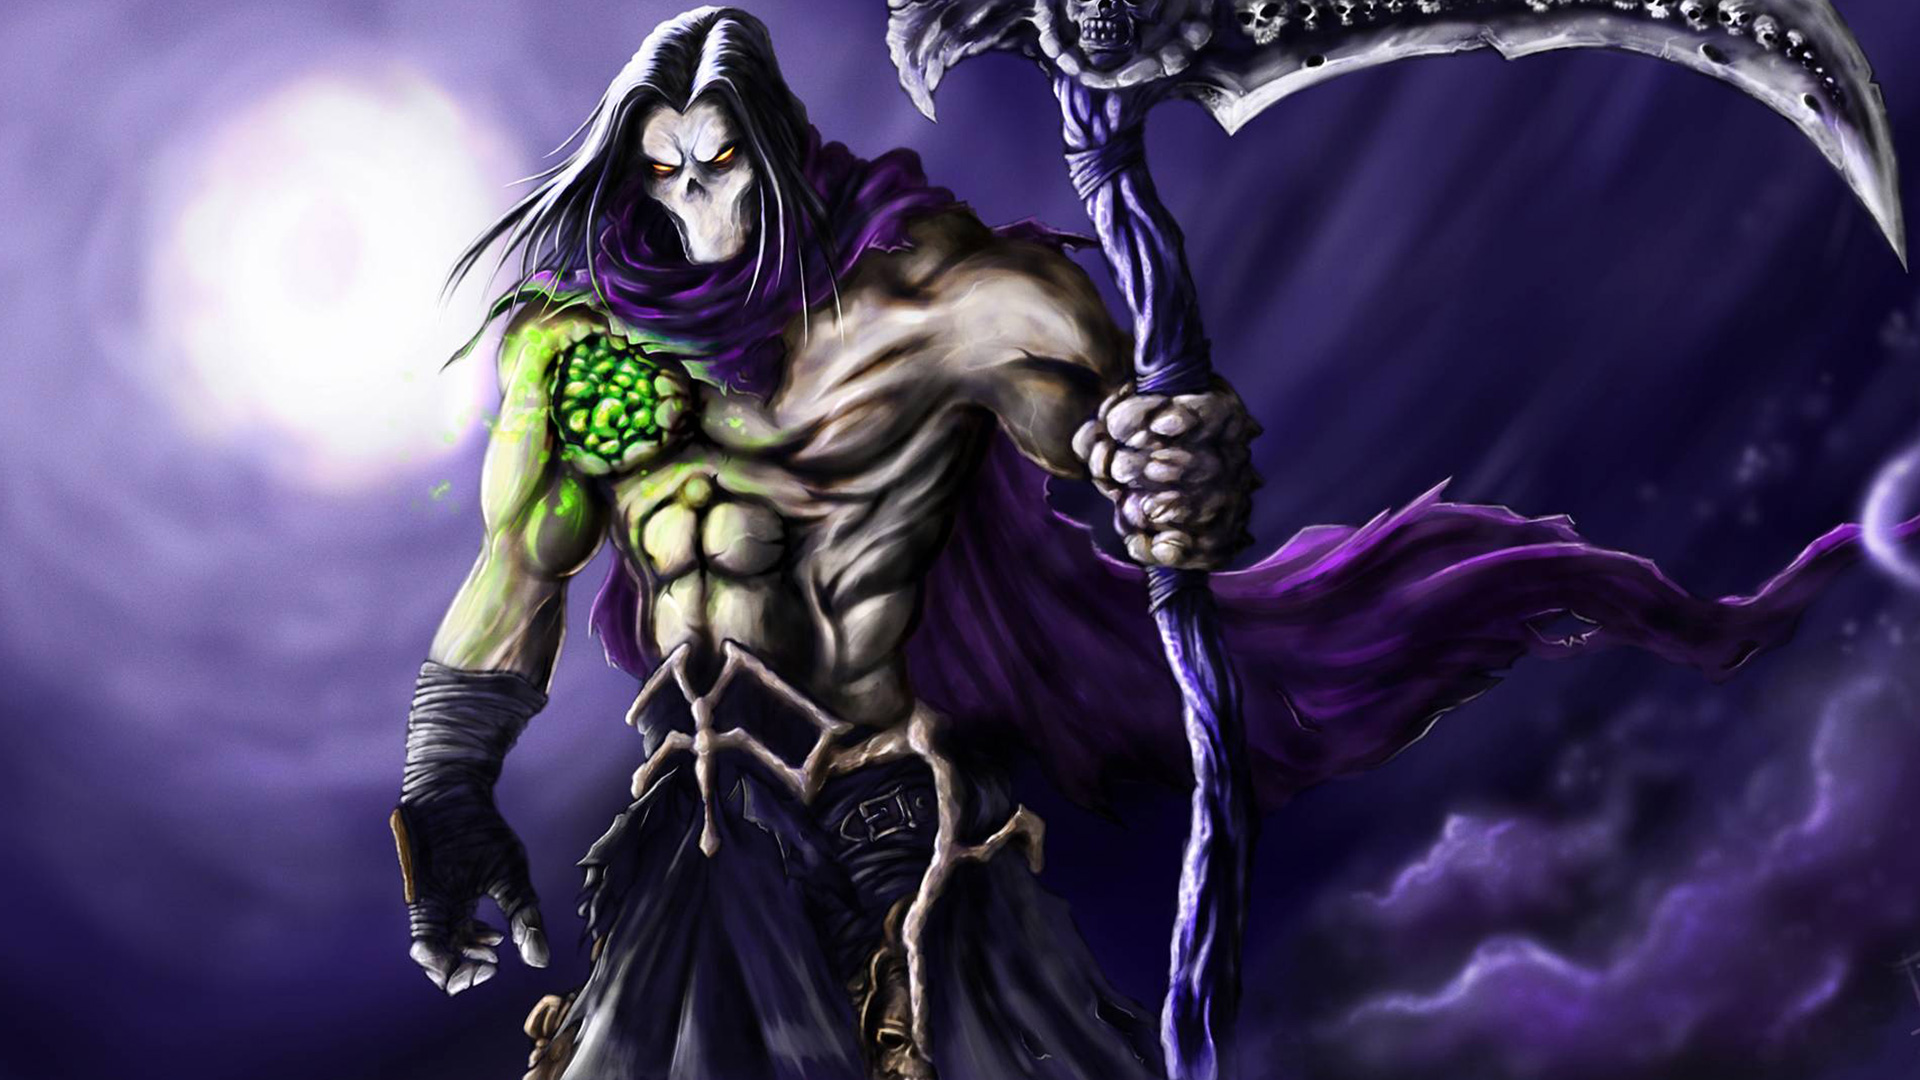 Darksiders II Wallpaper in 1920x1080